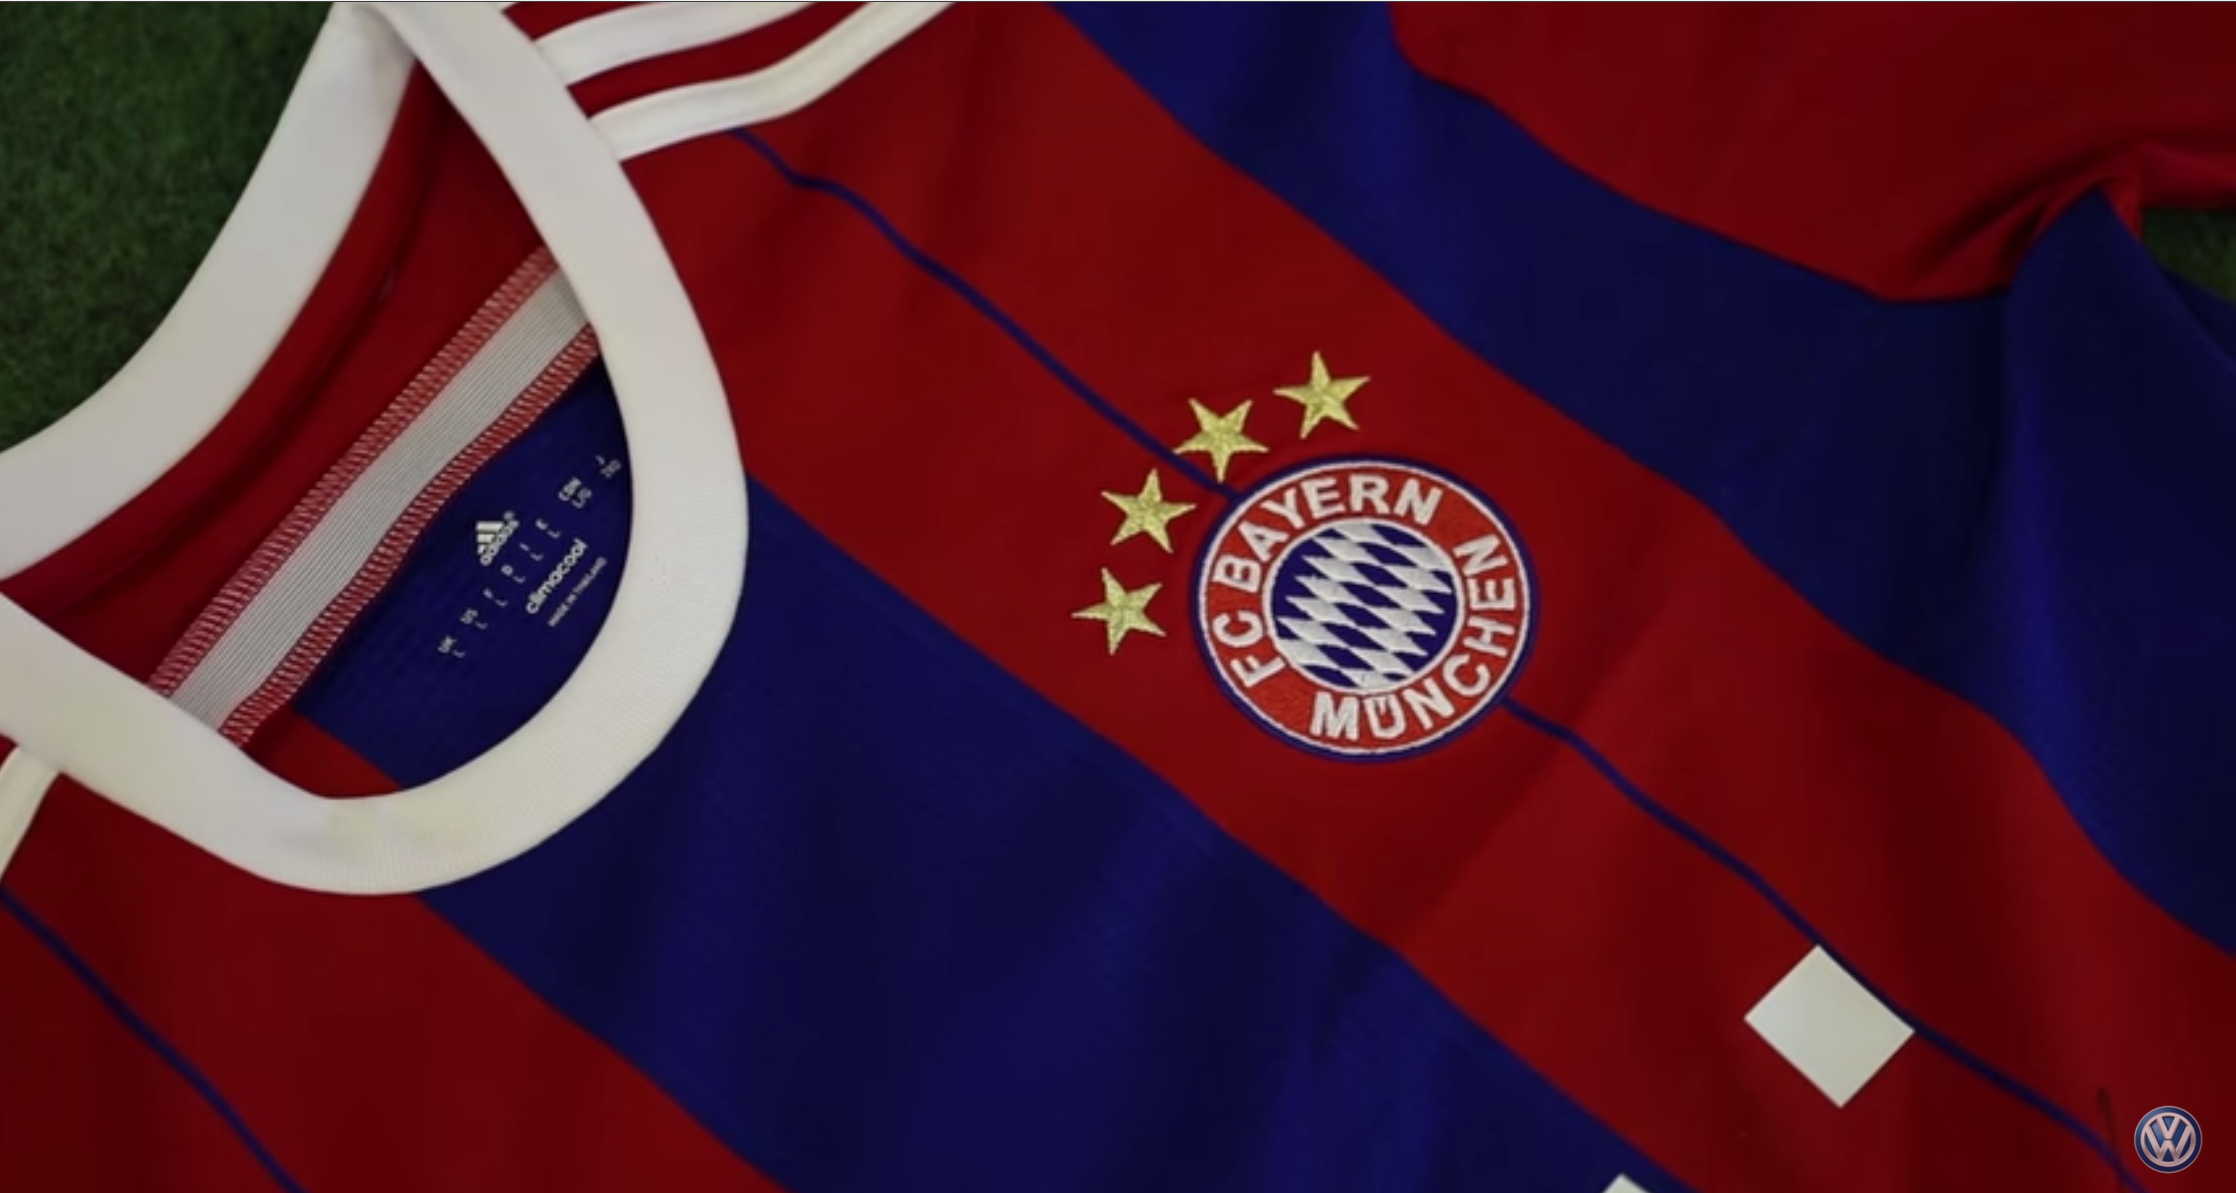 Volkswagen with Bayern Munich